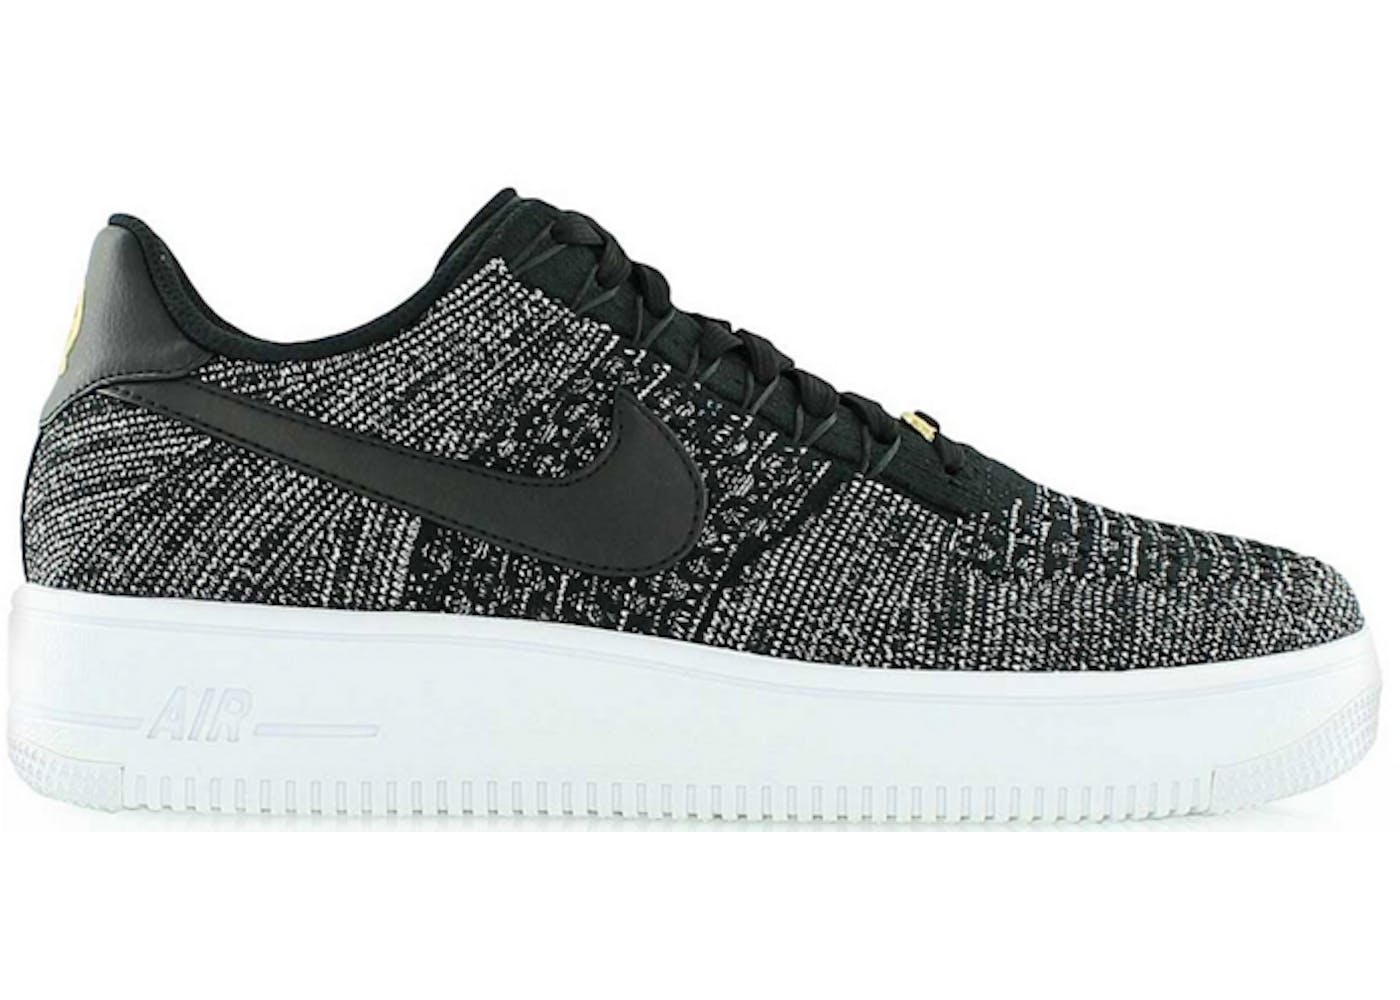 promo code 6a250 cd929 ... acheter nike air force 1 low ultra flyknit black grey qs quai 54 air  jordan. air jordan 1 retro hi flyknit Air Force 1 Low Flyknit Quai 54 ...